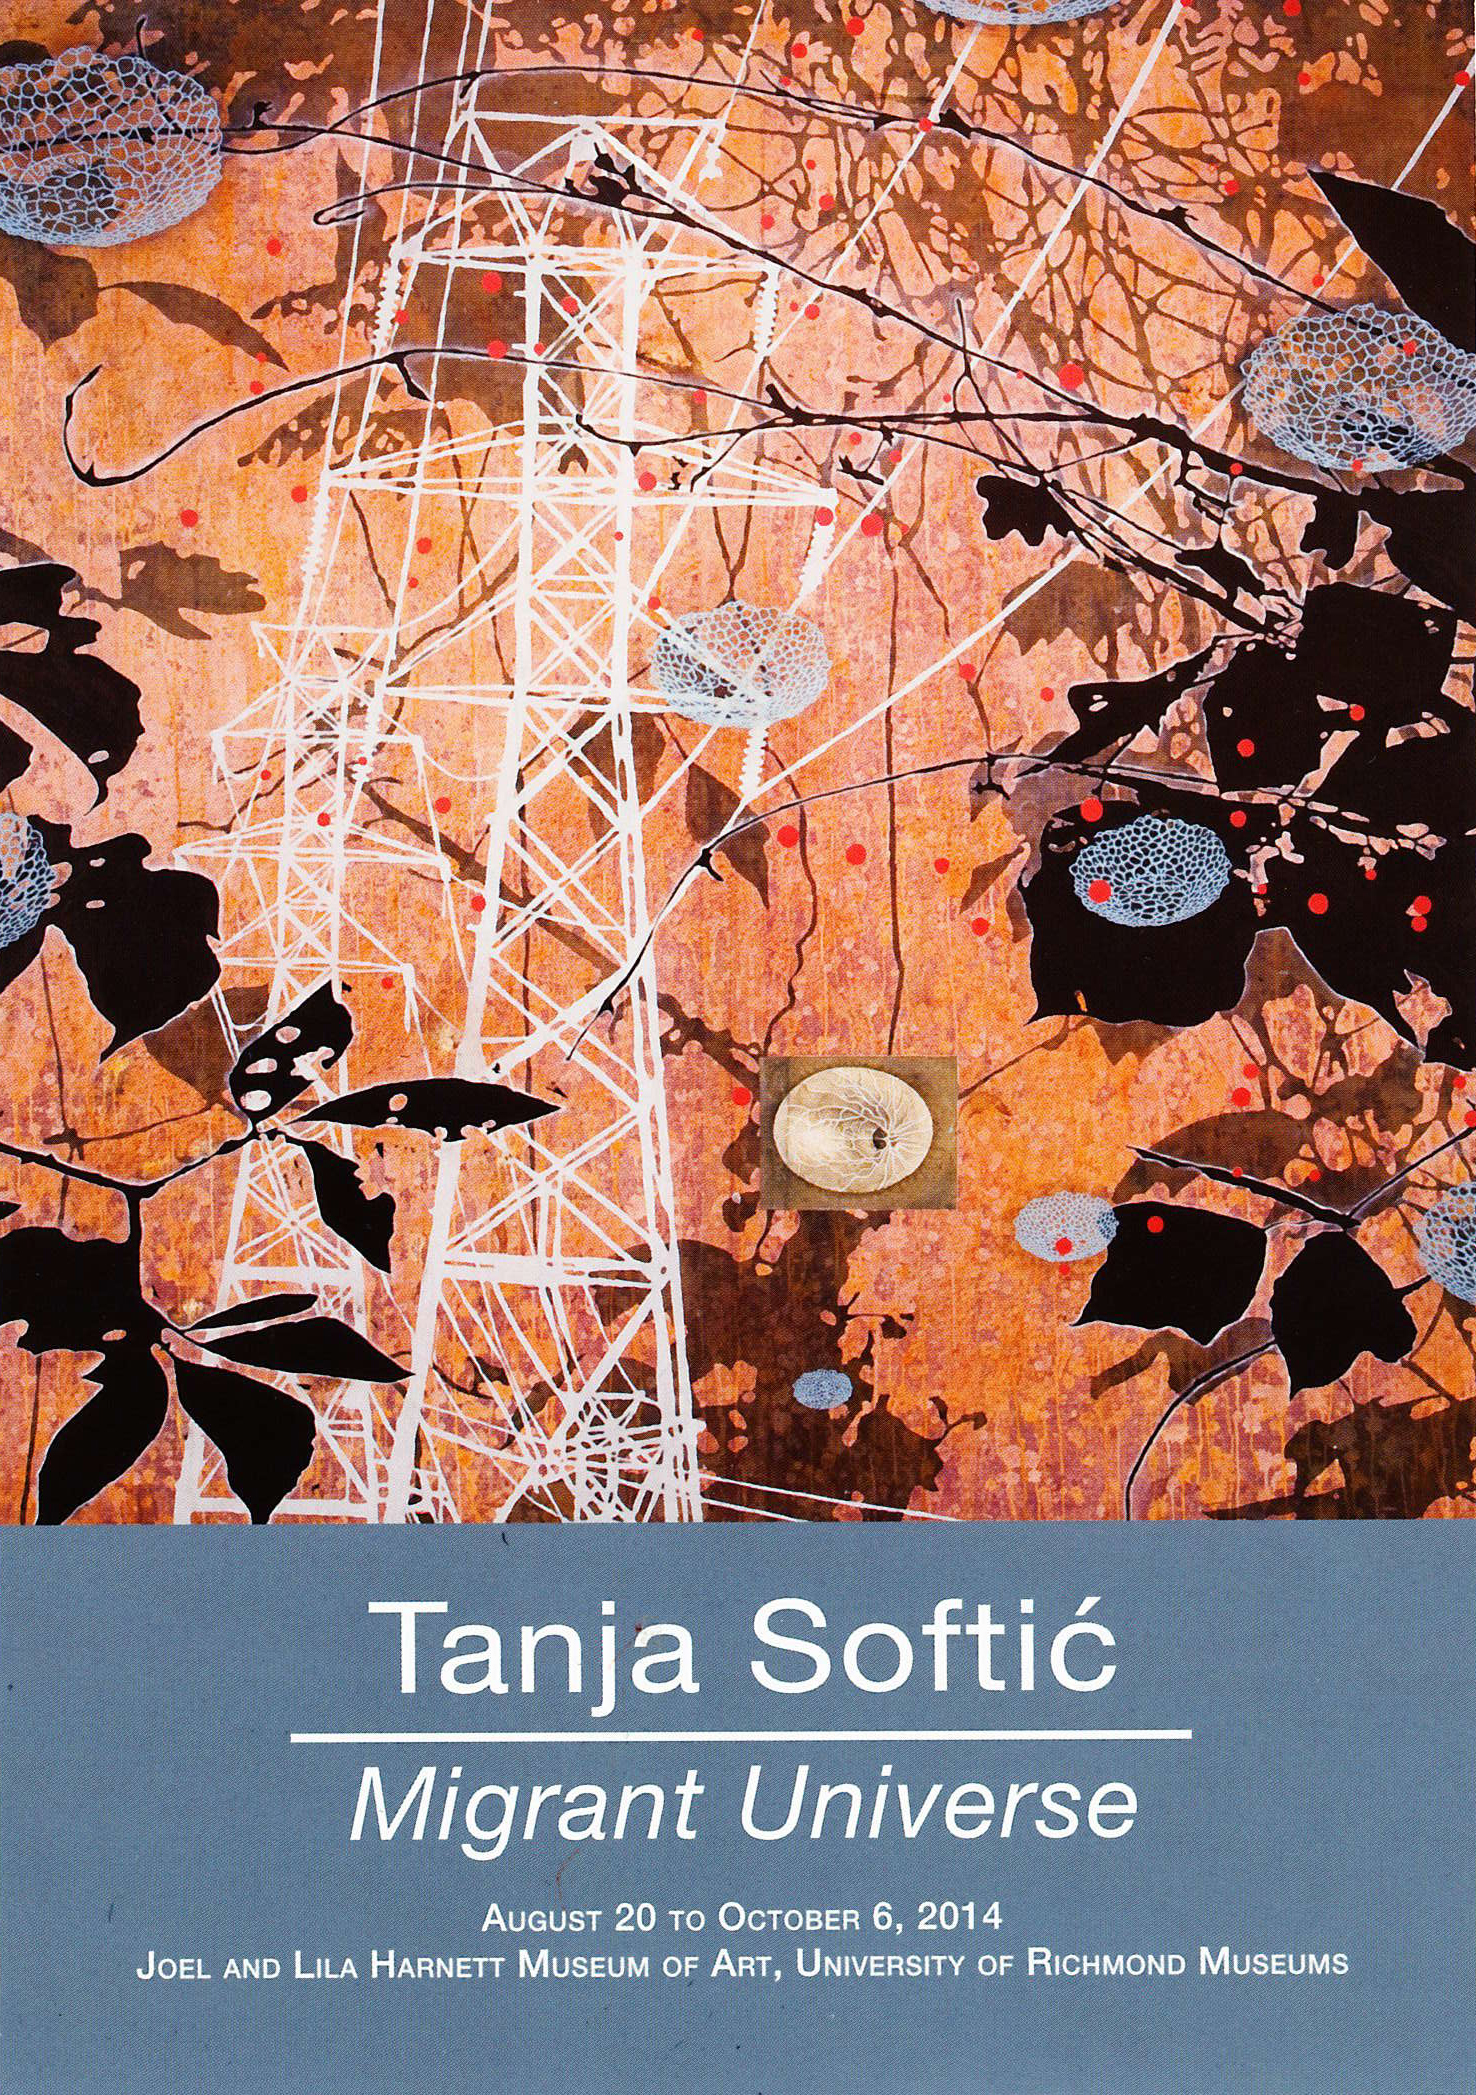 Tanja Softic Exhibition at University of Richmond Museums